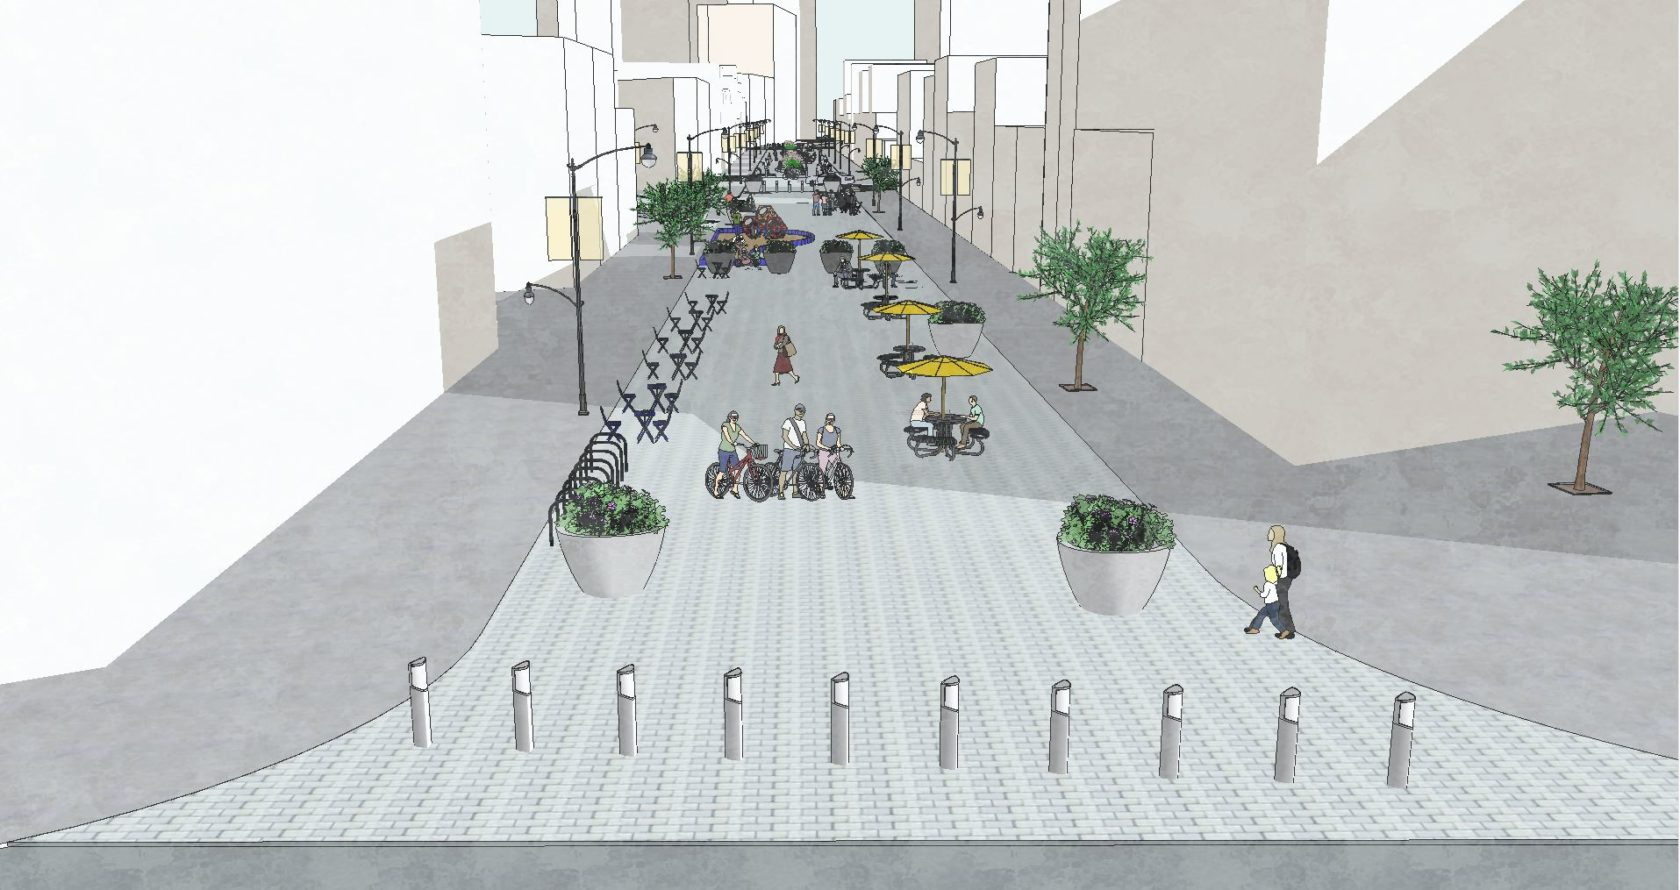 What's Going On With The Pedestrian Plaza